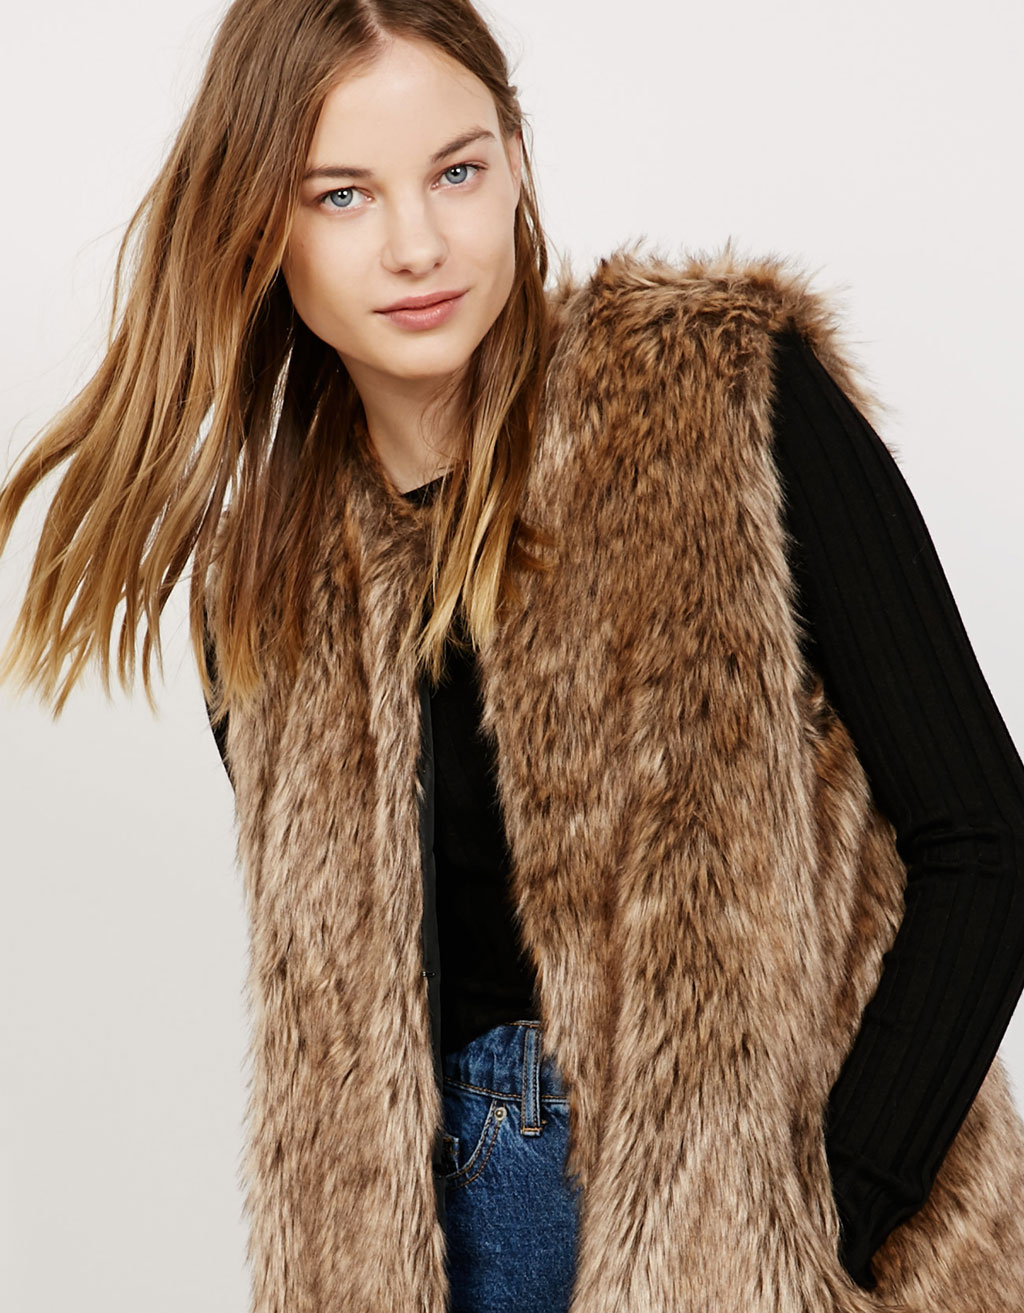 'SuperSoft' Fur vest